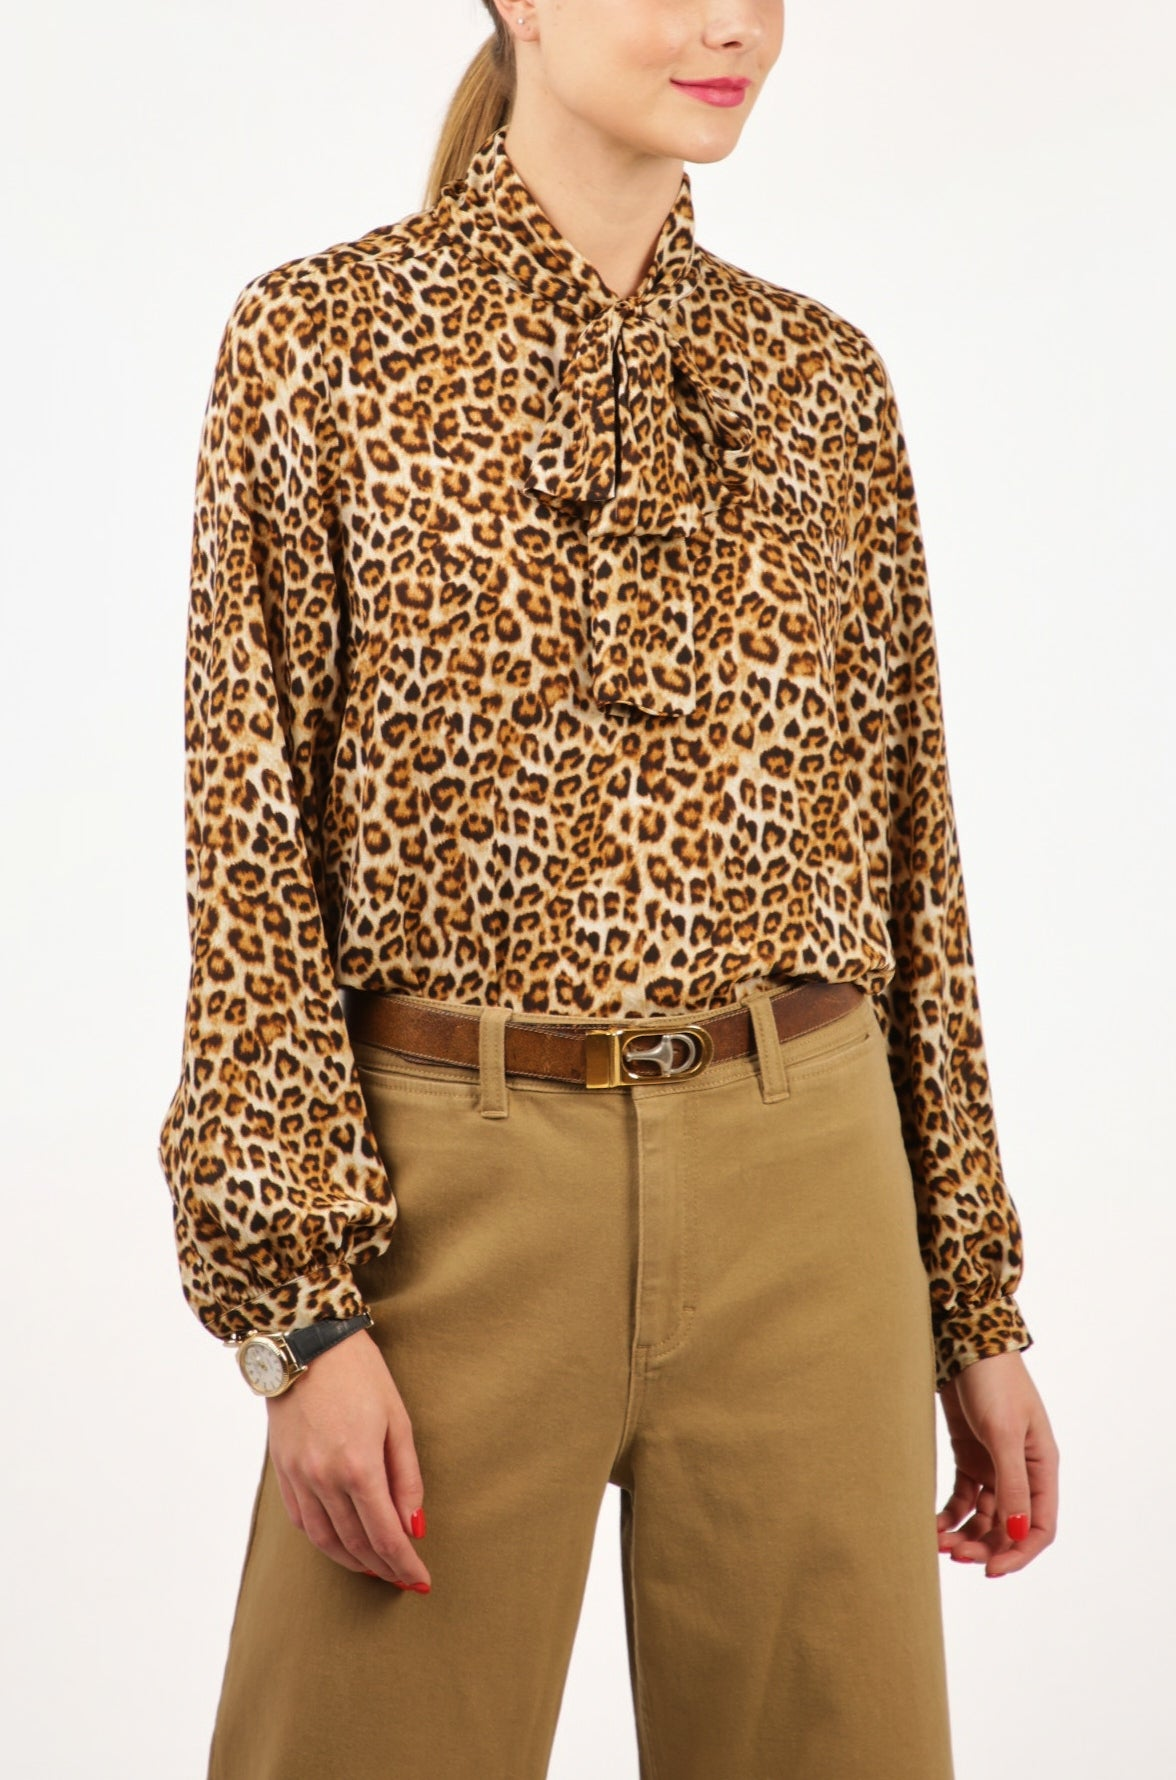 Pussy Bow Tie Blouse - Tan Leopard